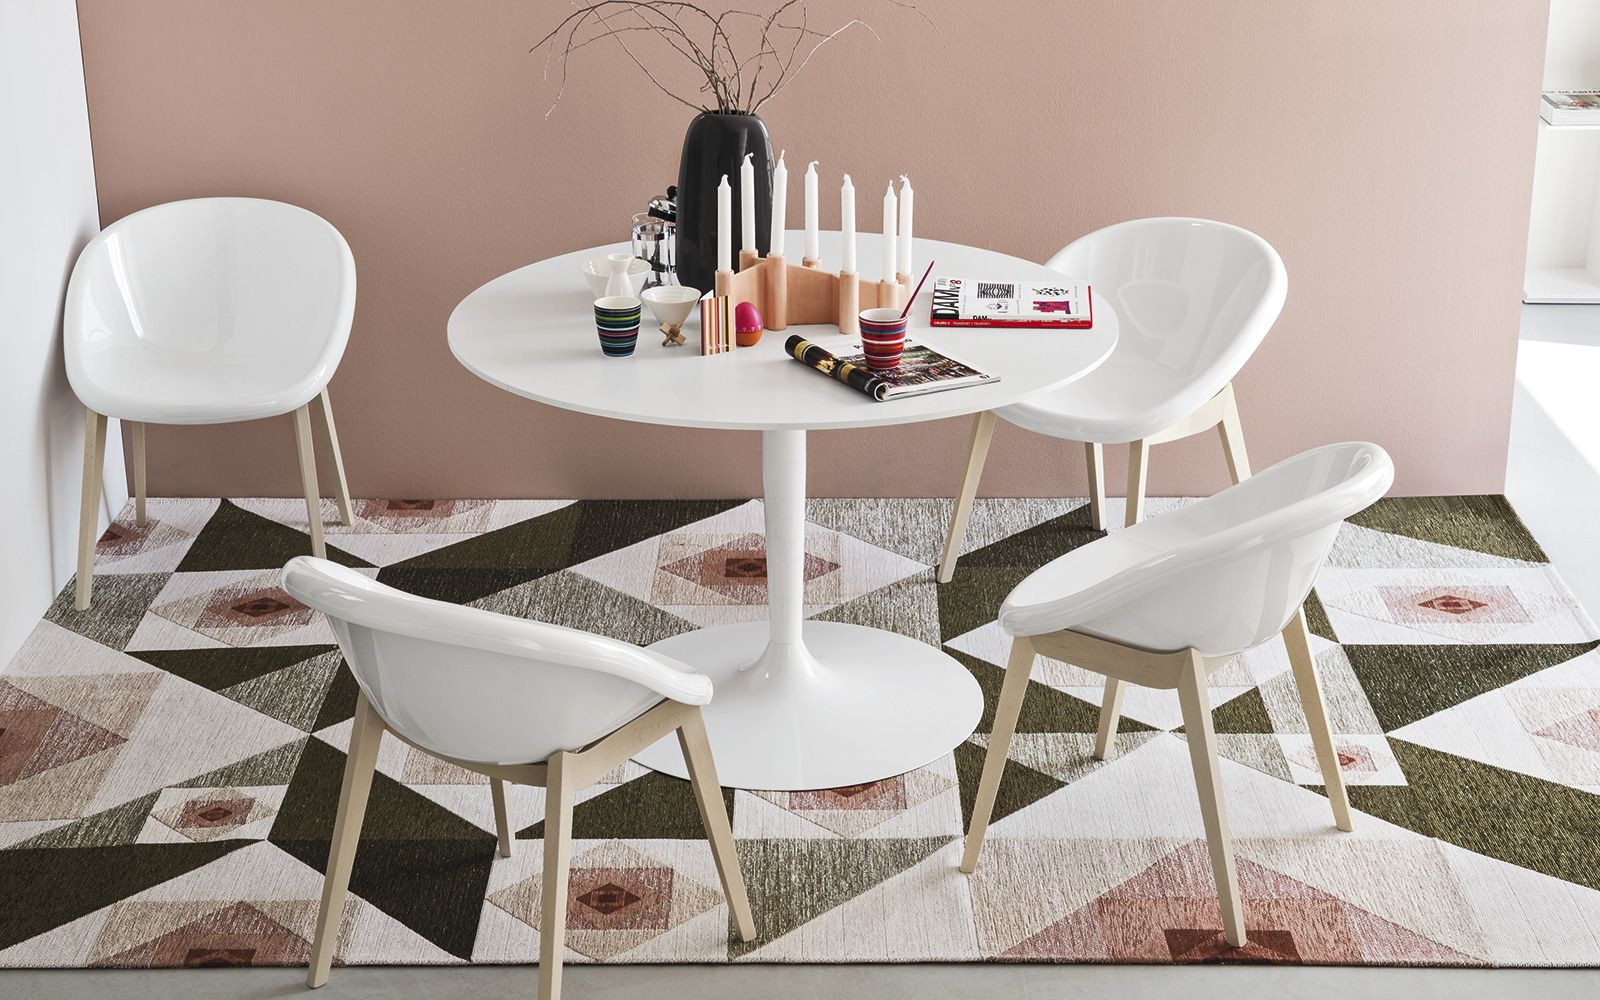 bloom wooden and polycarbonate chair - calligaris cs/1389 | ideas